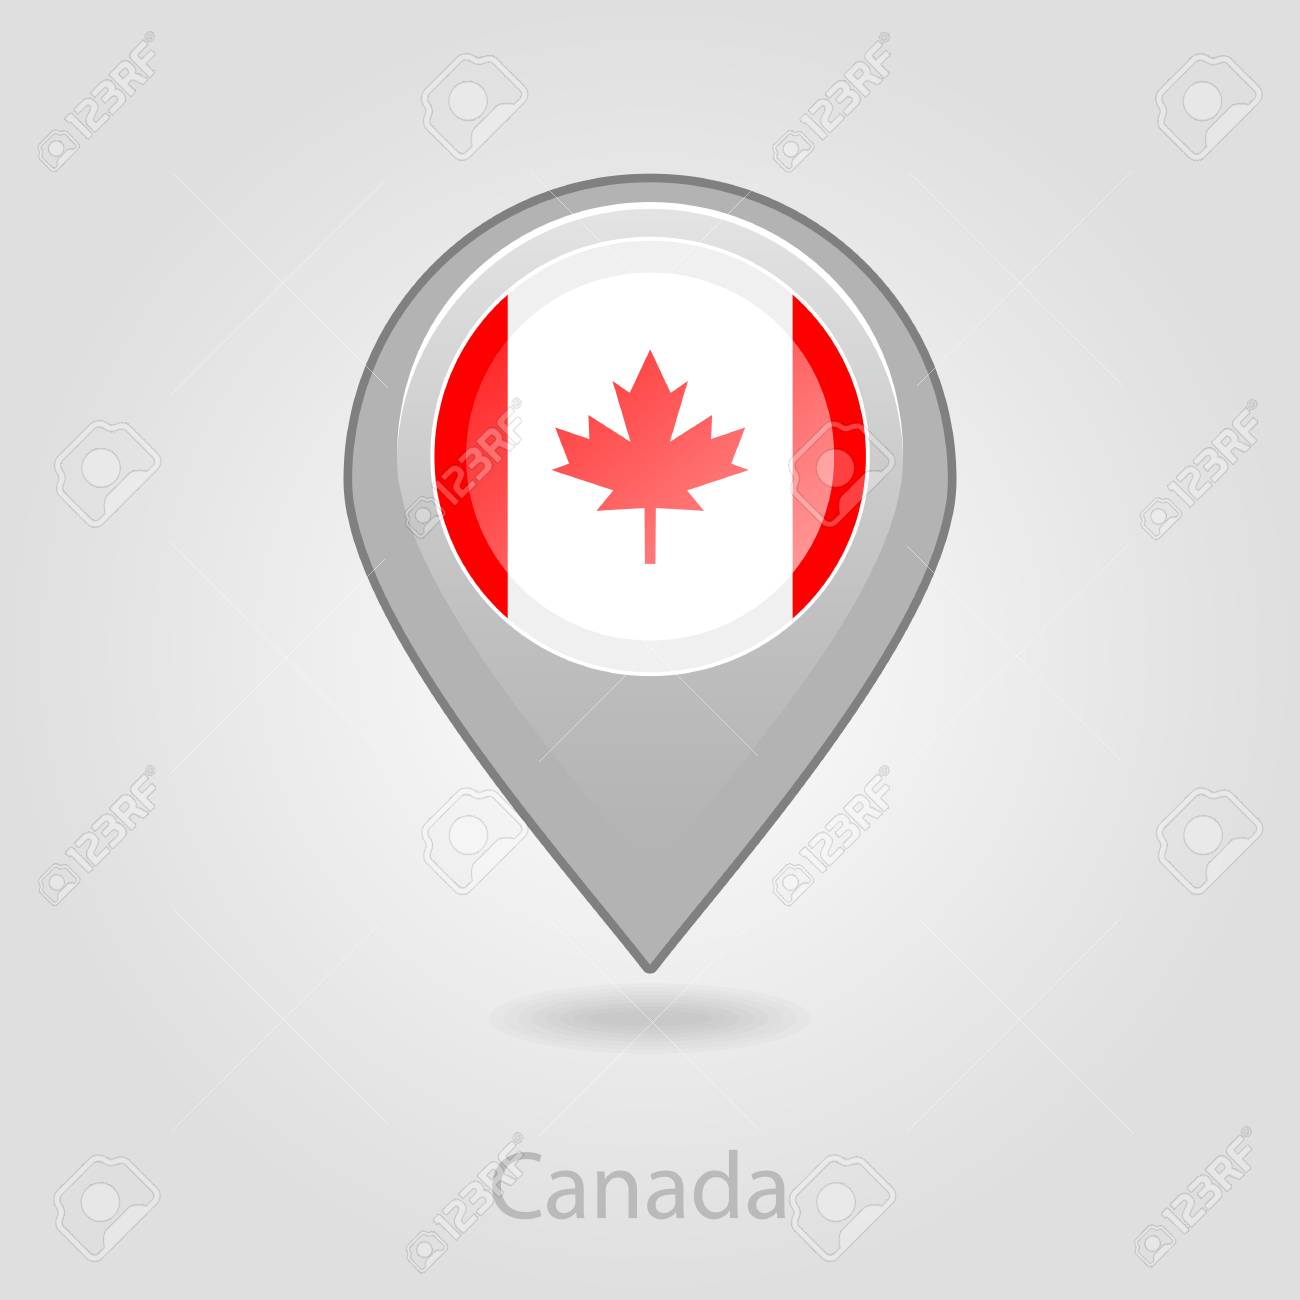 Map Of Canada Eps.Canada Flag Pin Map Icon Isolated Vector Illustration Eps 10